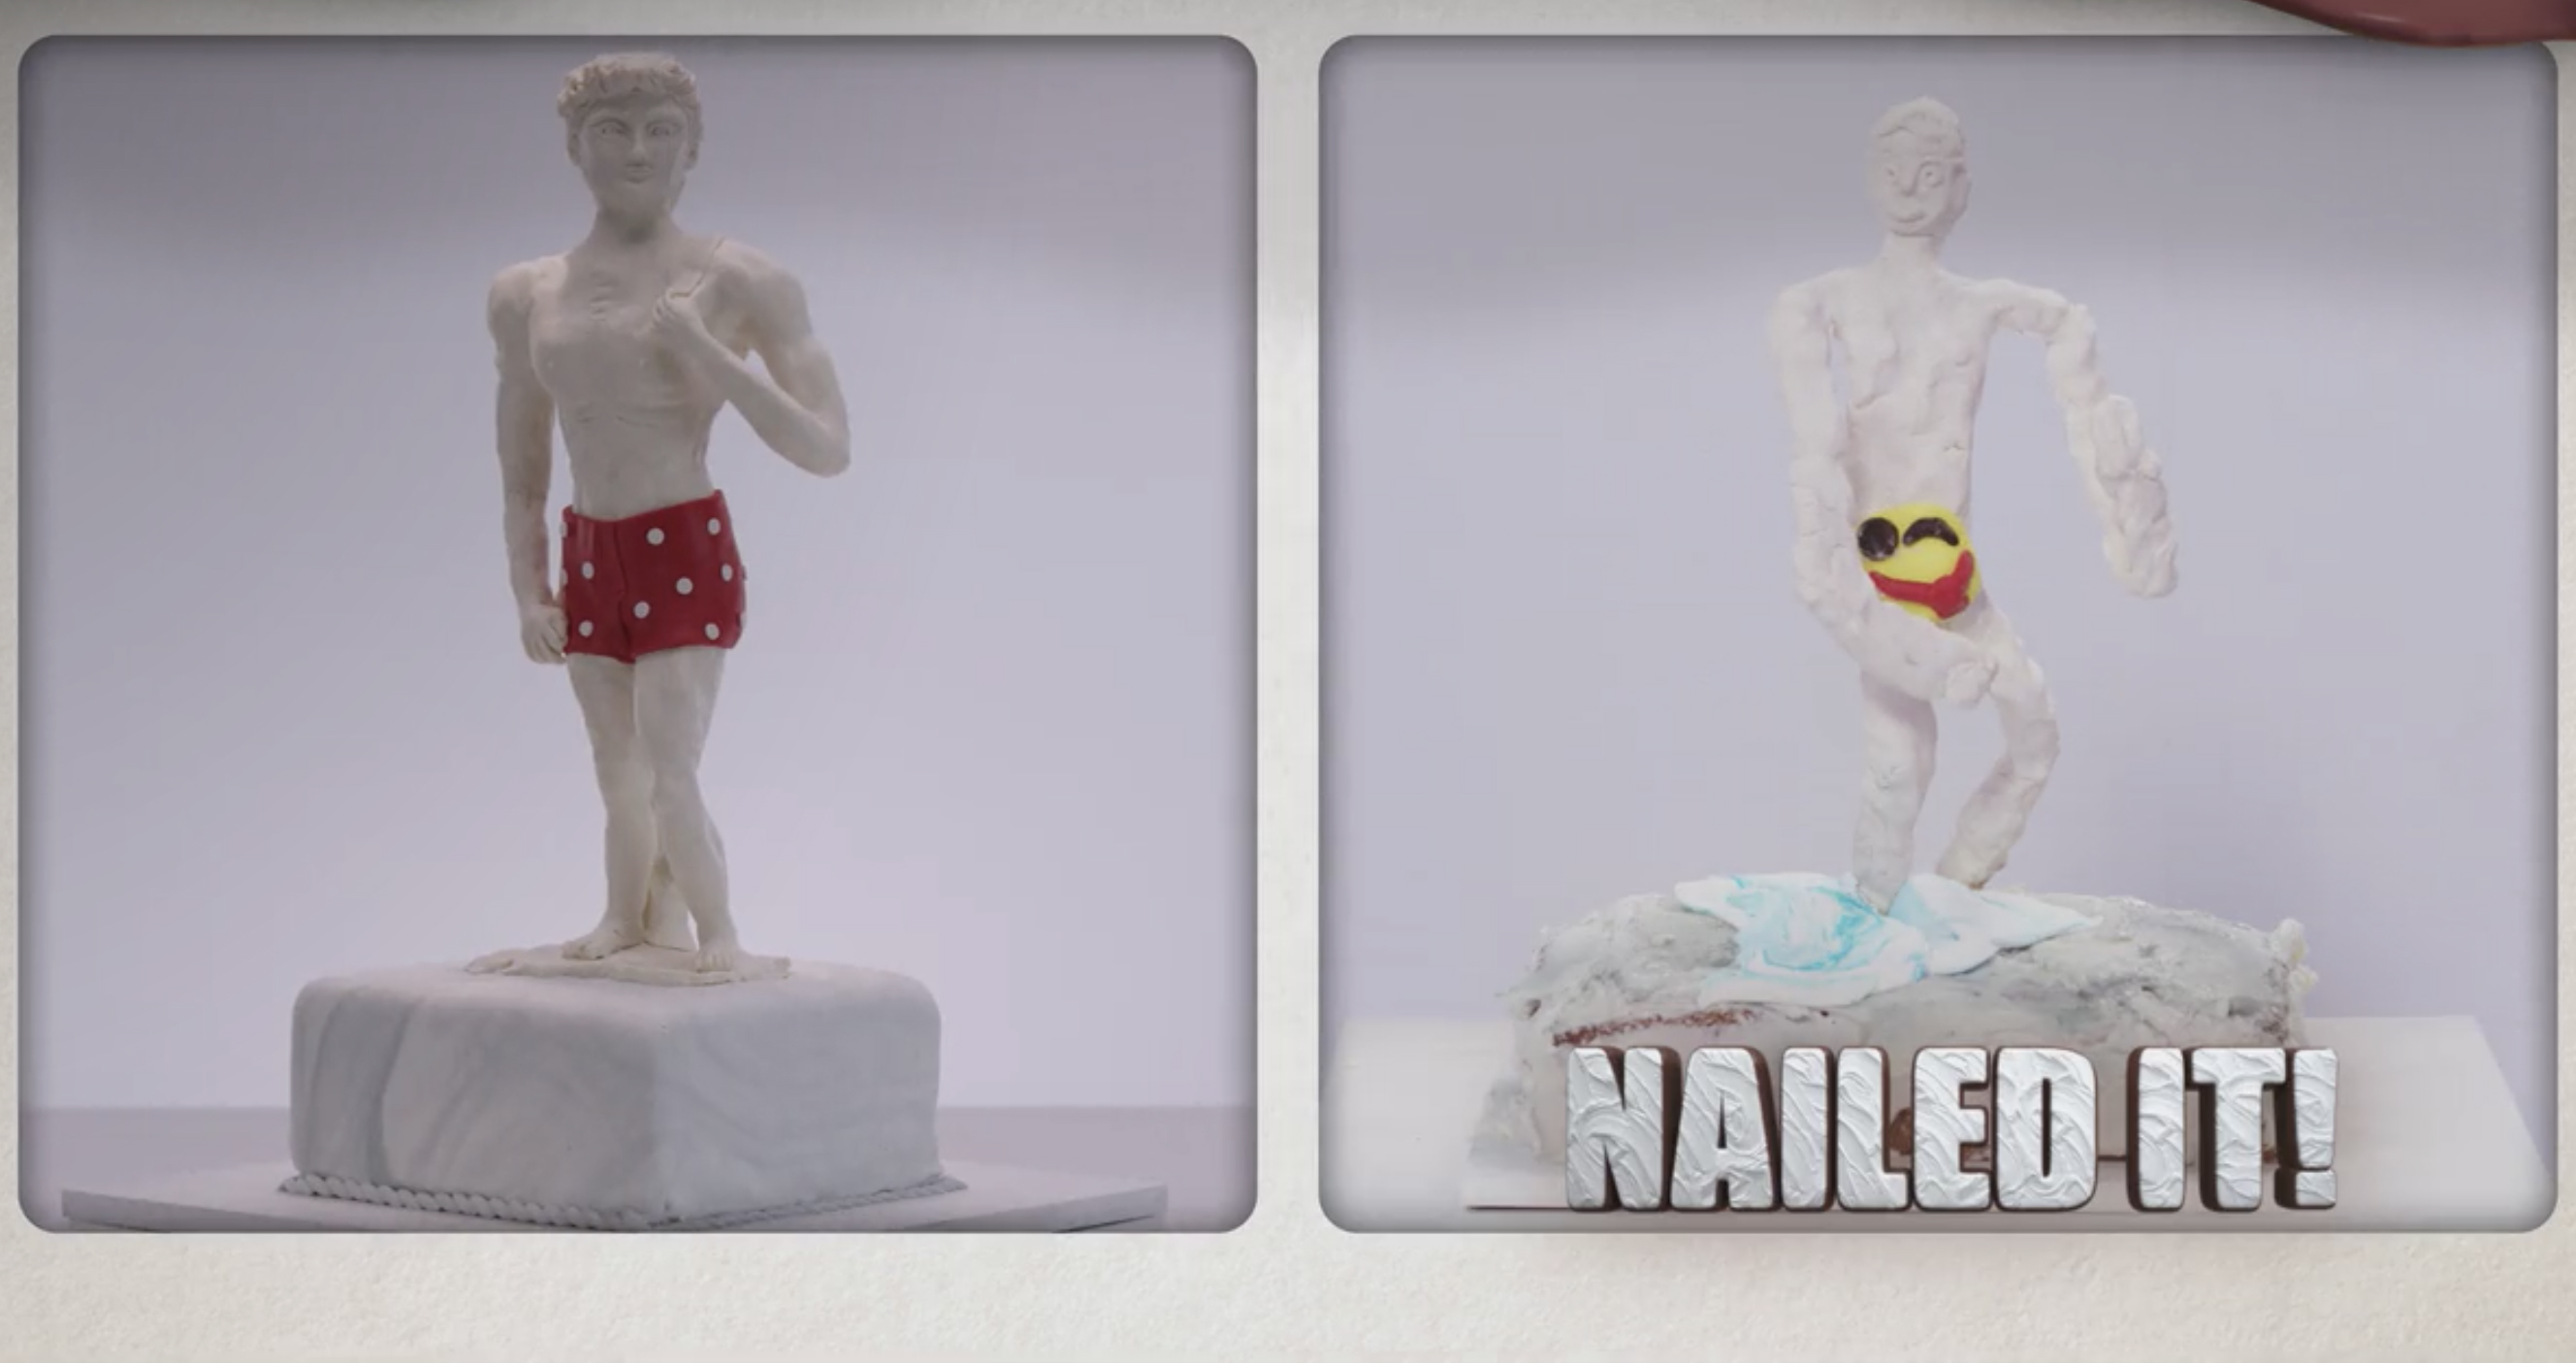 The Five Best Cake Fails of 'Nailed It!' Season 3